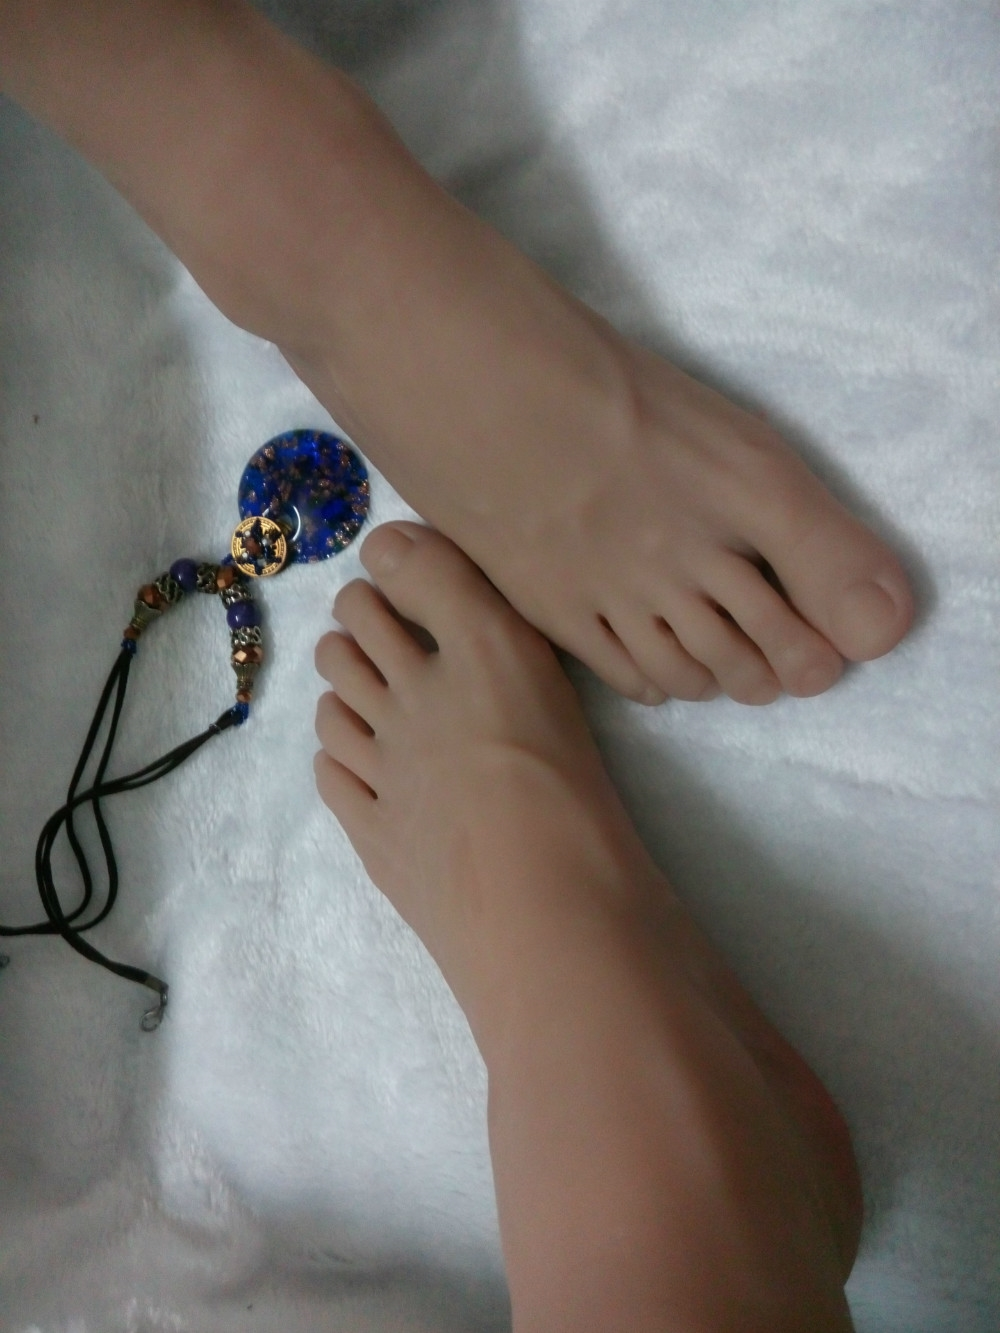 Free foot fetish shows